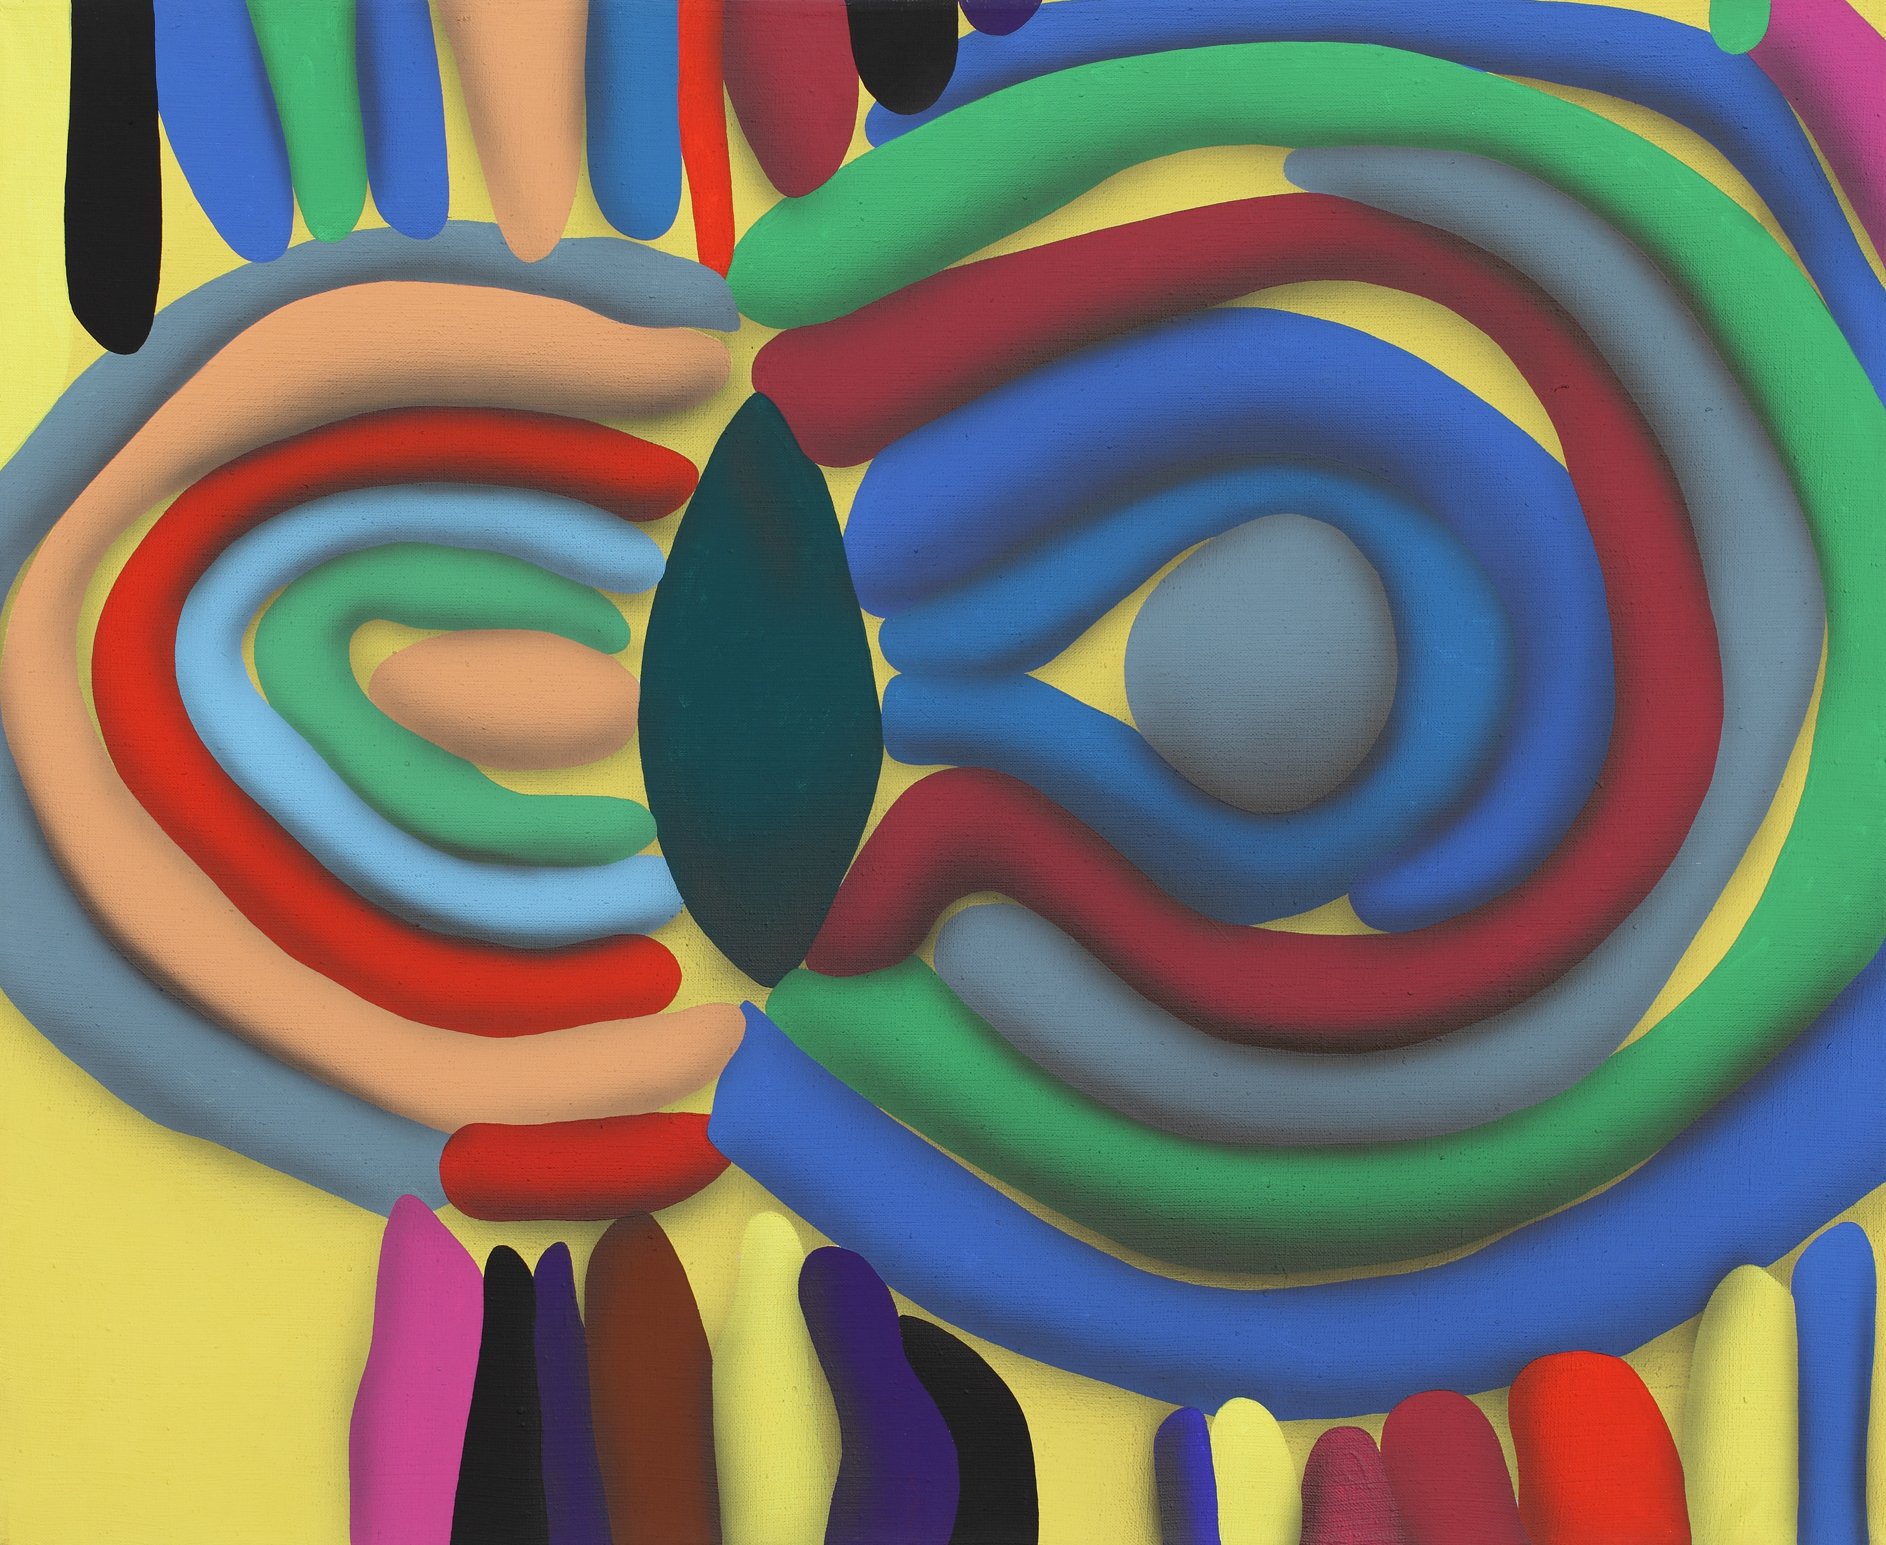 Touches Of Surface And Volume Forms III. 2010, acrylic on canvas, 70 x 85 cm